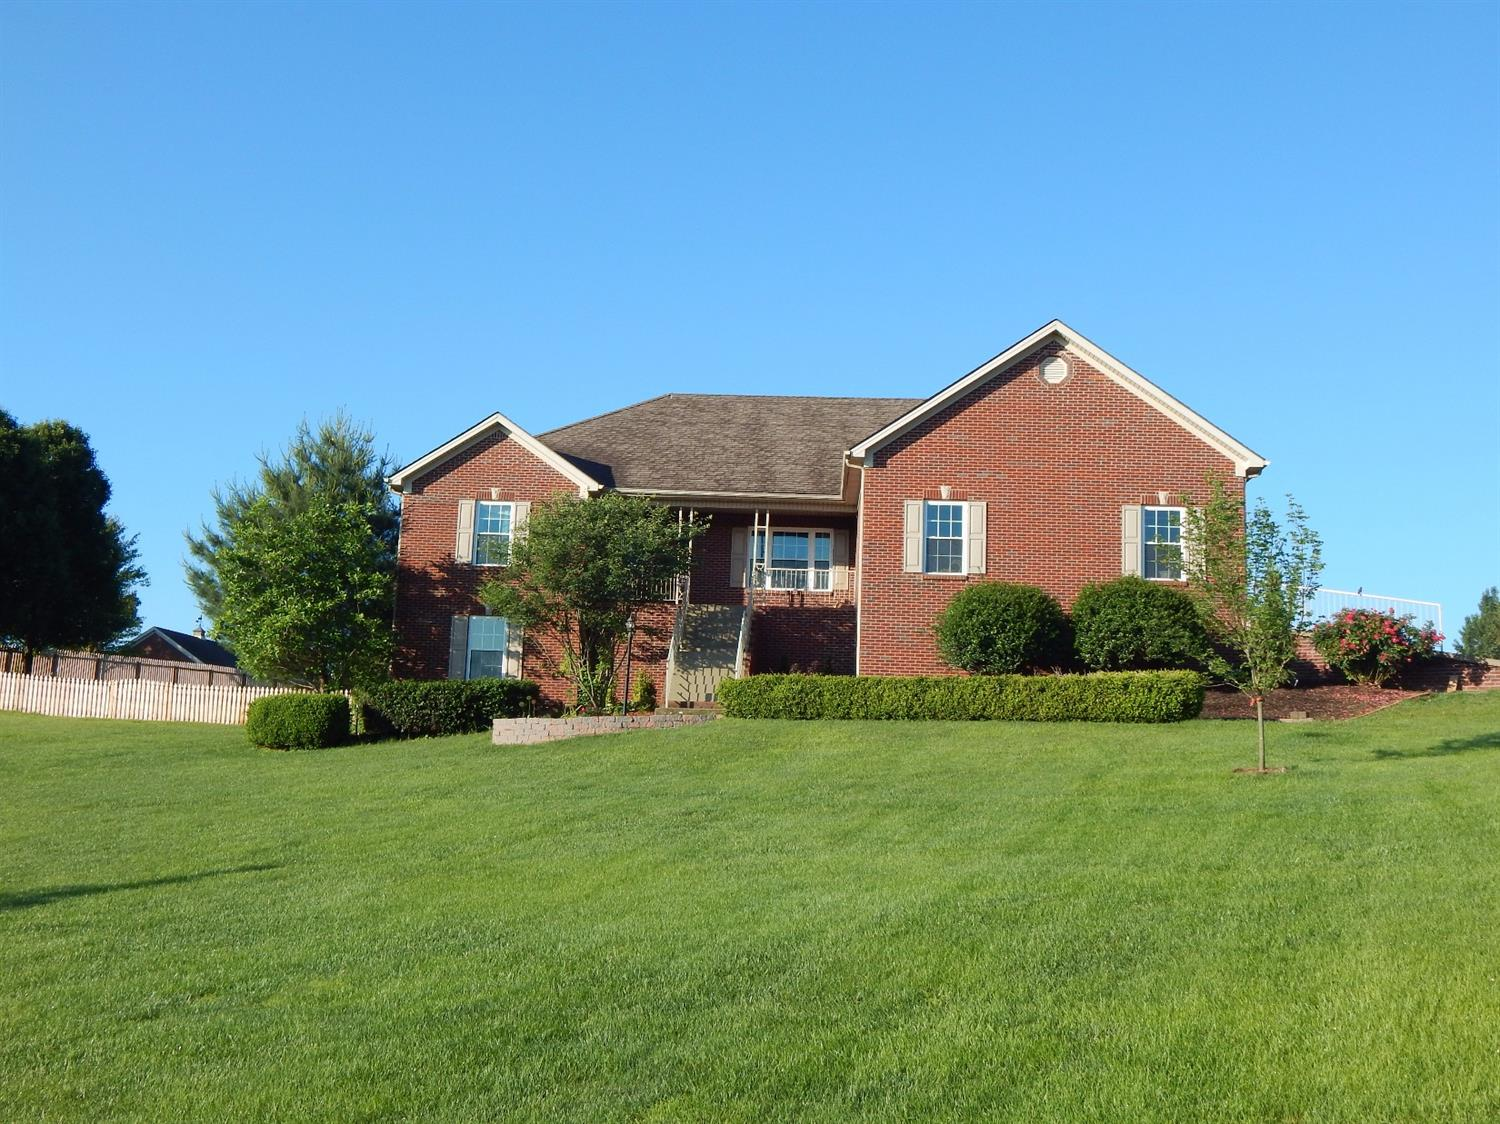 PRICE%20REDUCED...Large%20Ranch%20on%20a%20Spacious%20Finished%20Basement,%20located%20in%20the%20Desirable%20Indigo%20Run%20Subdivision,%20only%20minutes%20from%20Downtown%20Richmond%20and%20the%20cities%20of%20Lexington,%20Winchester%20and%20Berea.%20The%20First%20Floor%20Features%20a.%20Master%20Suite%20w/a%20generous%20sized%20Master%20Bathroom/Closet,%20Great%20Room%20w/gas%20fireplace%20and%20hardwood%20floors,%20Kitchen%20with%20Granite%20Countertops,%20ample%20%20cabinet/counterspace,%20new%20appliances%20(refrigerator%20does%20not%20convey)%20and%20tile%20%20flooring,%20two%20extra%20bedrooms%20w/full%20bathroom%20and%20finally%20a%20laundry%20w/sink.%20The%20Basement%20has%20a%20massive%20Recreation%20Room,%20Two%20Bedrooms%20w/Full%20Bathroom%20and%20extra%20storage%20spaces.%20All%20this%20on%20a%20One%20Acre,%20Treed,%20Wonderfully%20Landscaped%20lot.%20Indigo%20Run%20is%20an%20Equine%20Friendly%20Community,%20that%20offers%20a%20Boarding%20Stable.%20A%201%20year%20HMS%20home%20warranty%20to%20buyer%20at%20closing%20with%20accepted%20offer.